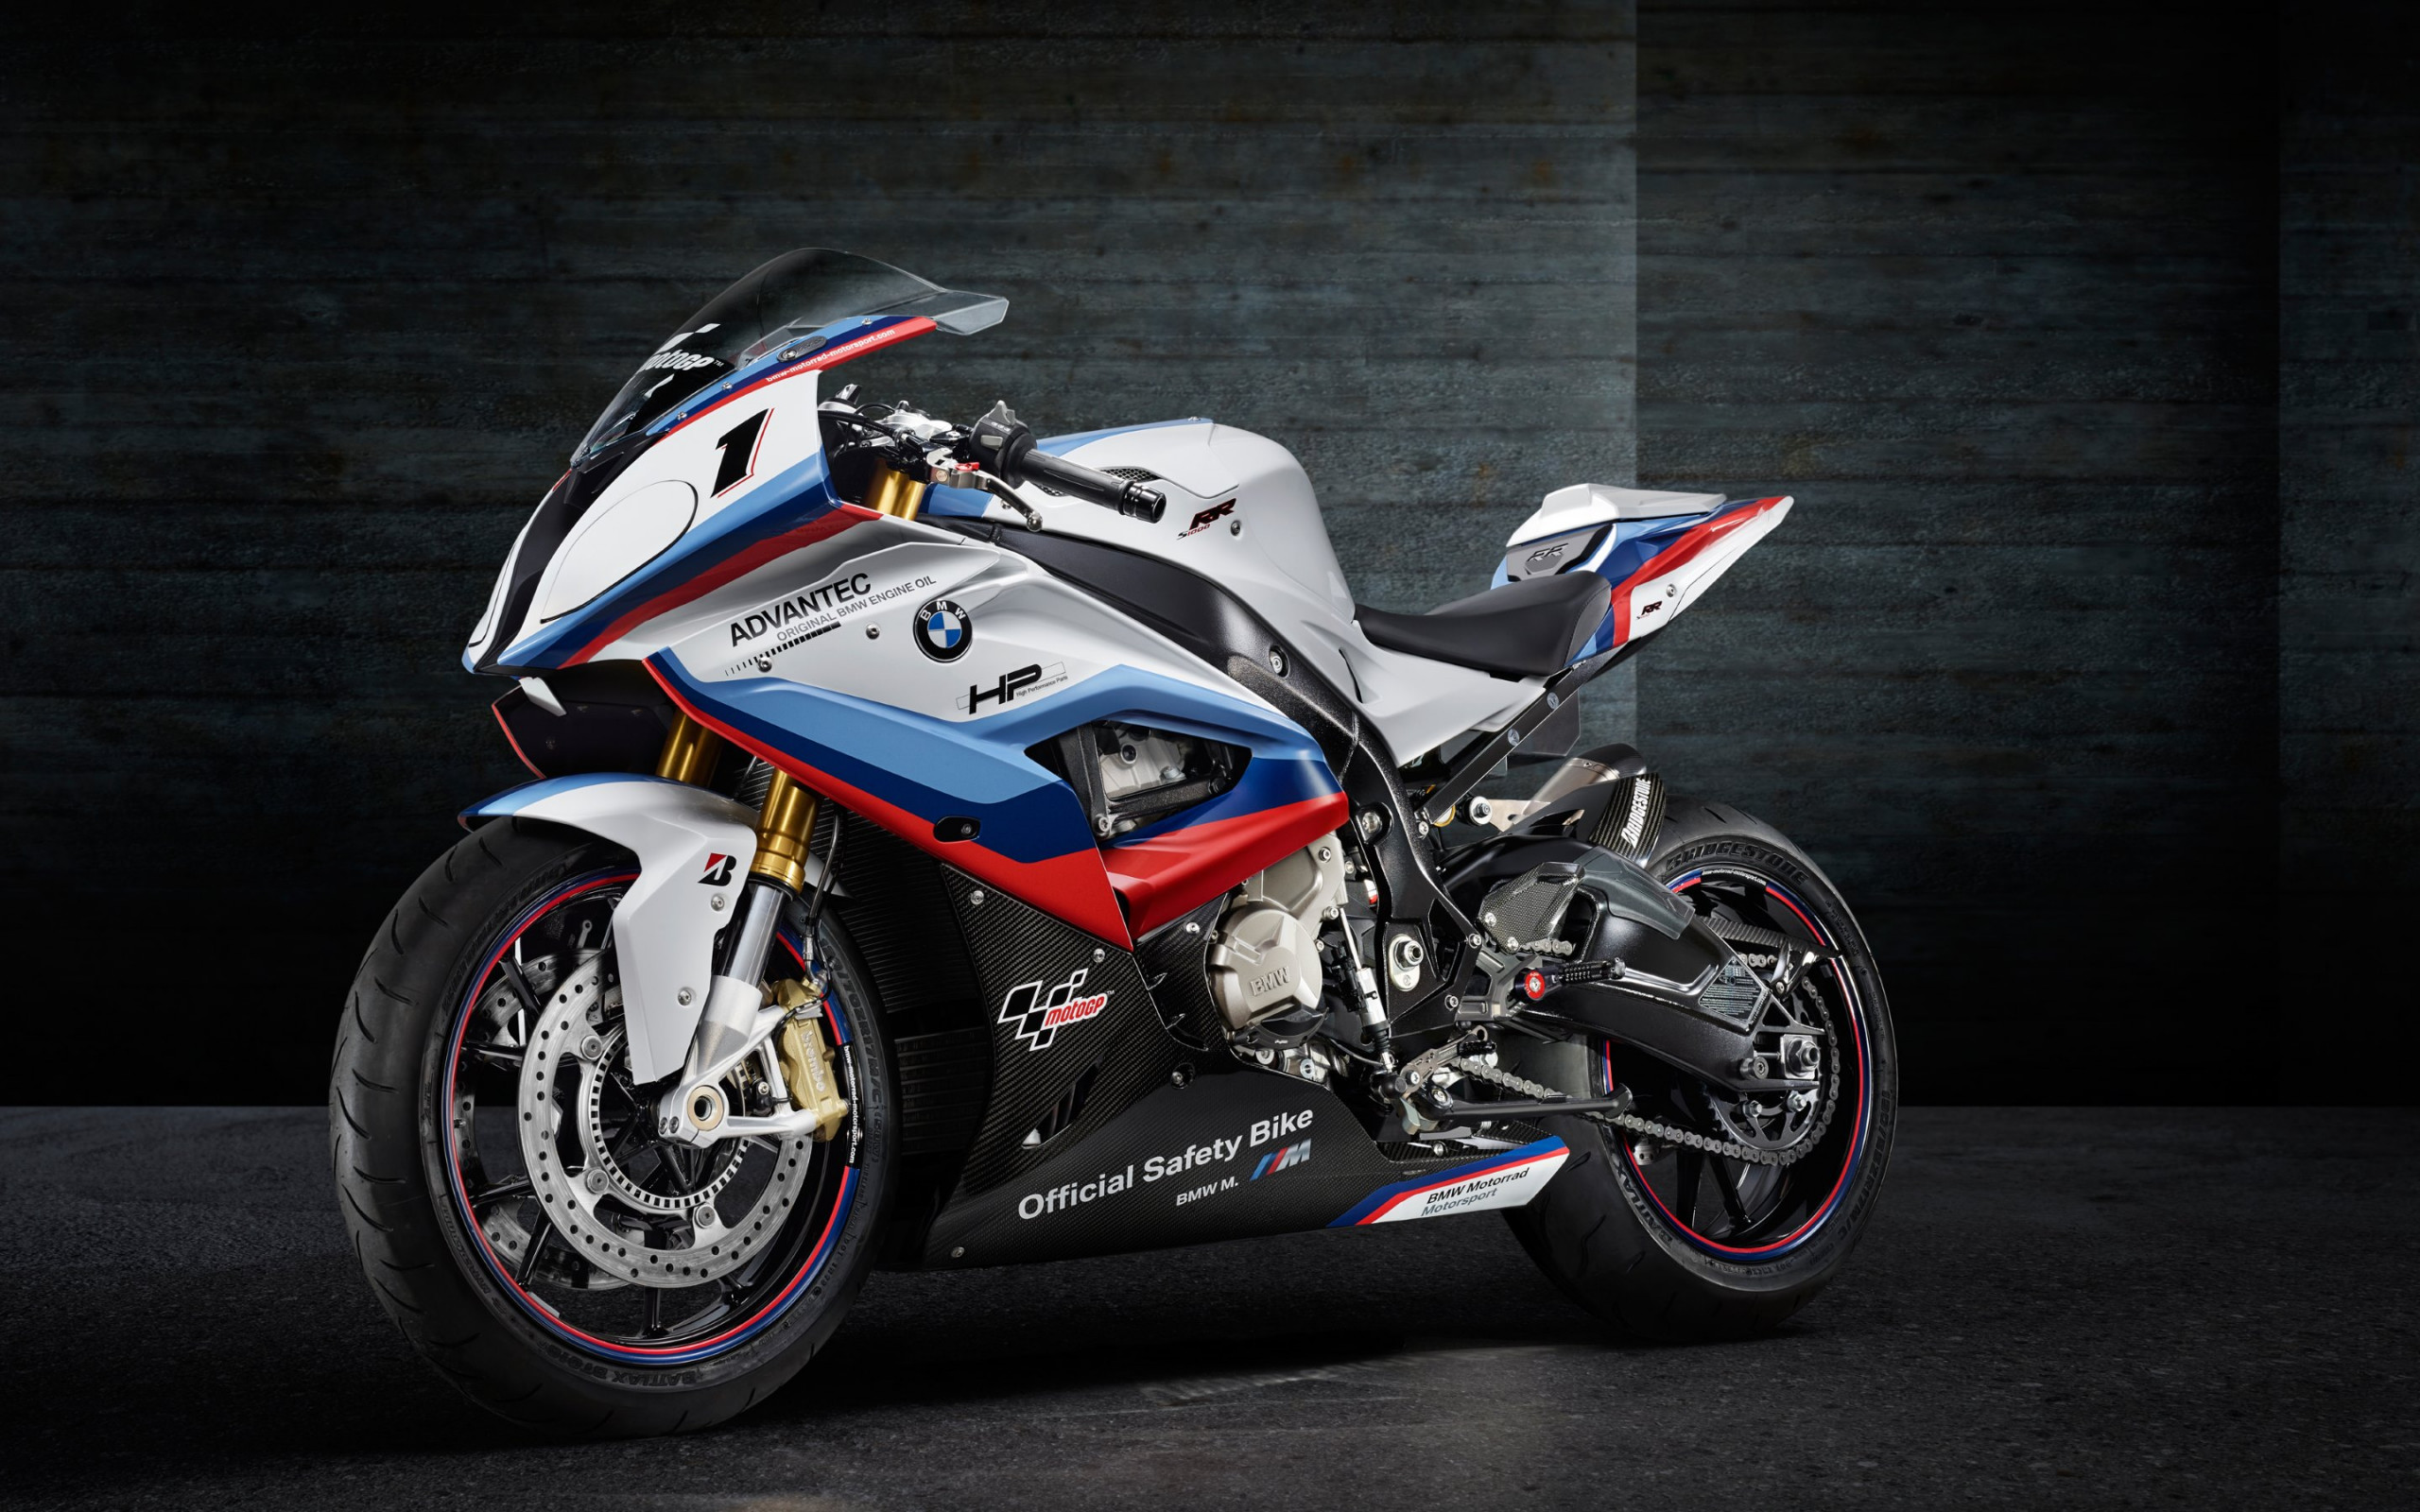 BMW S1000RR MotoGP Safety Motorcycle | 2560x1600 wallpaper